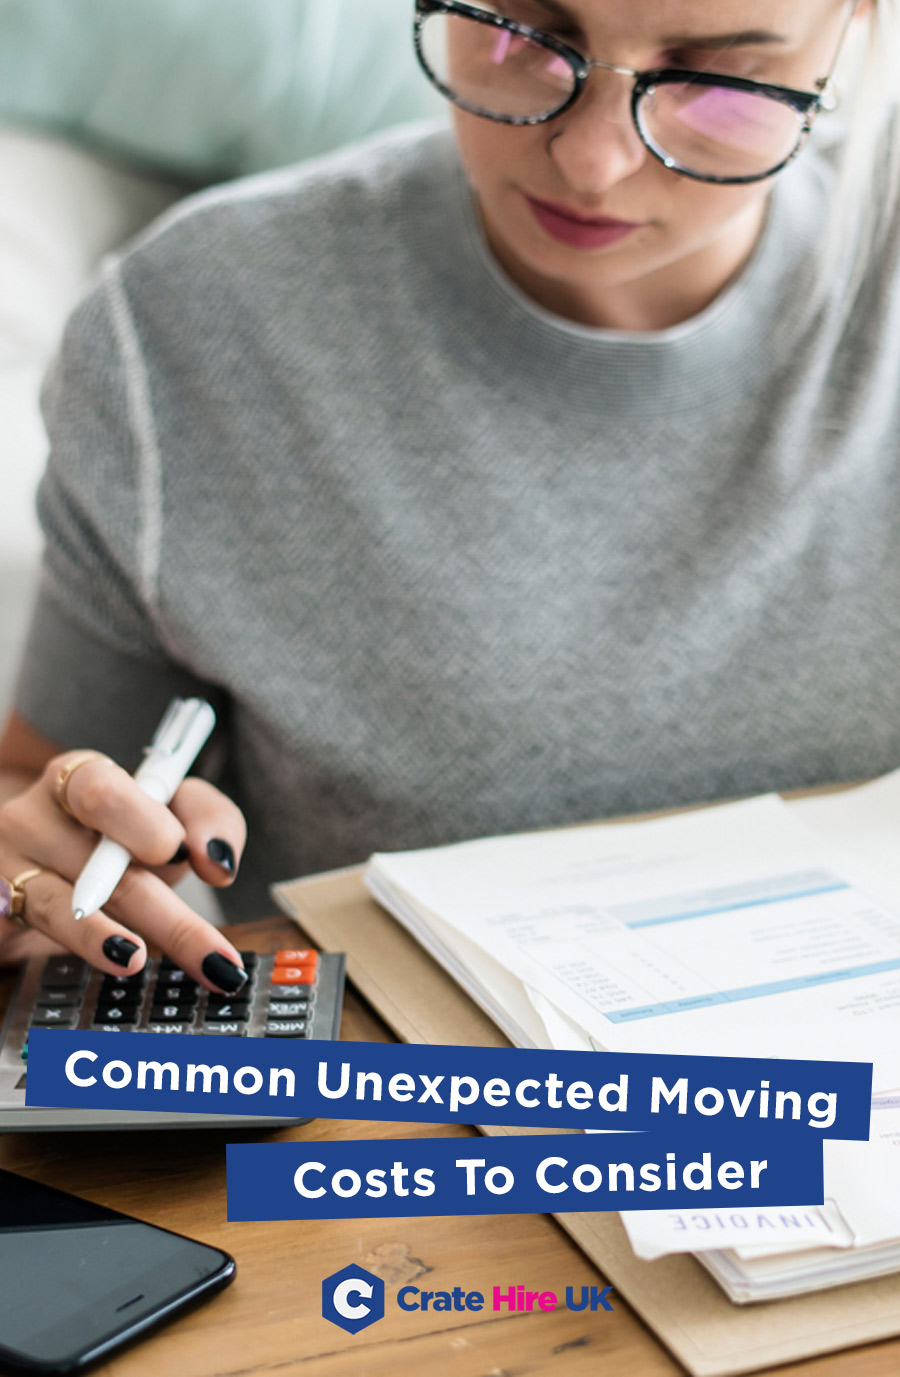 Commonly Unexpected Moving Costs